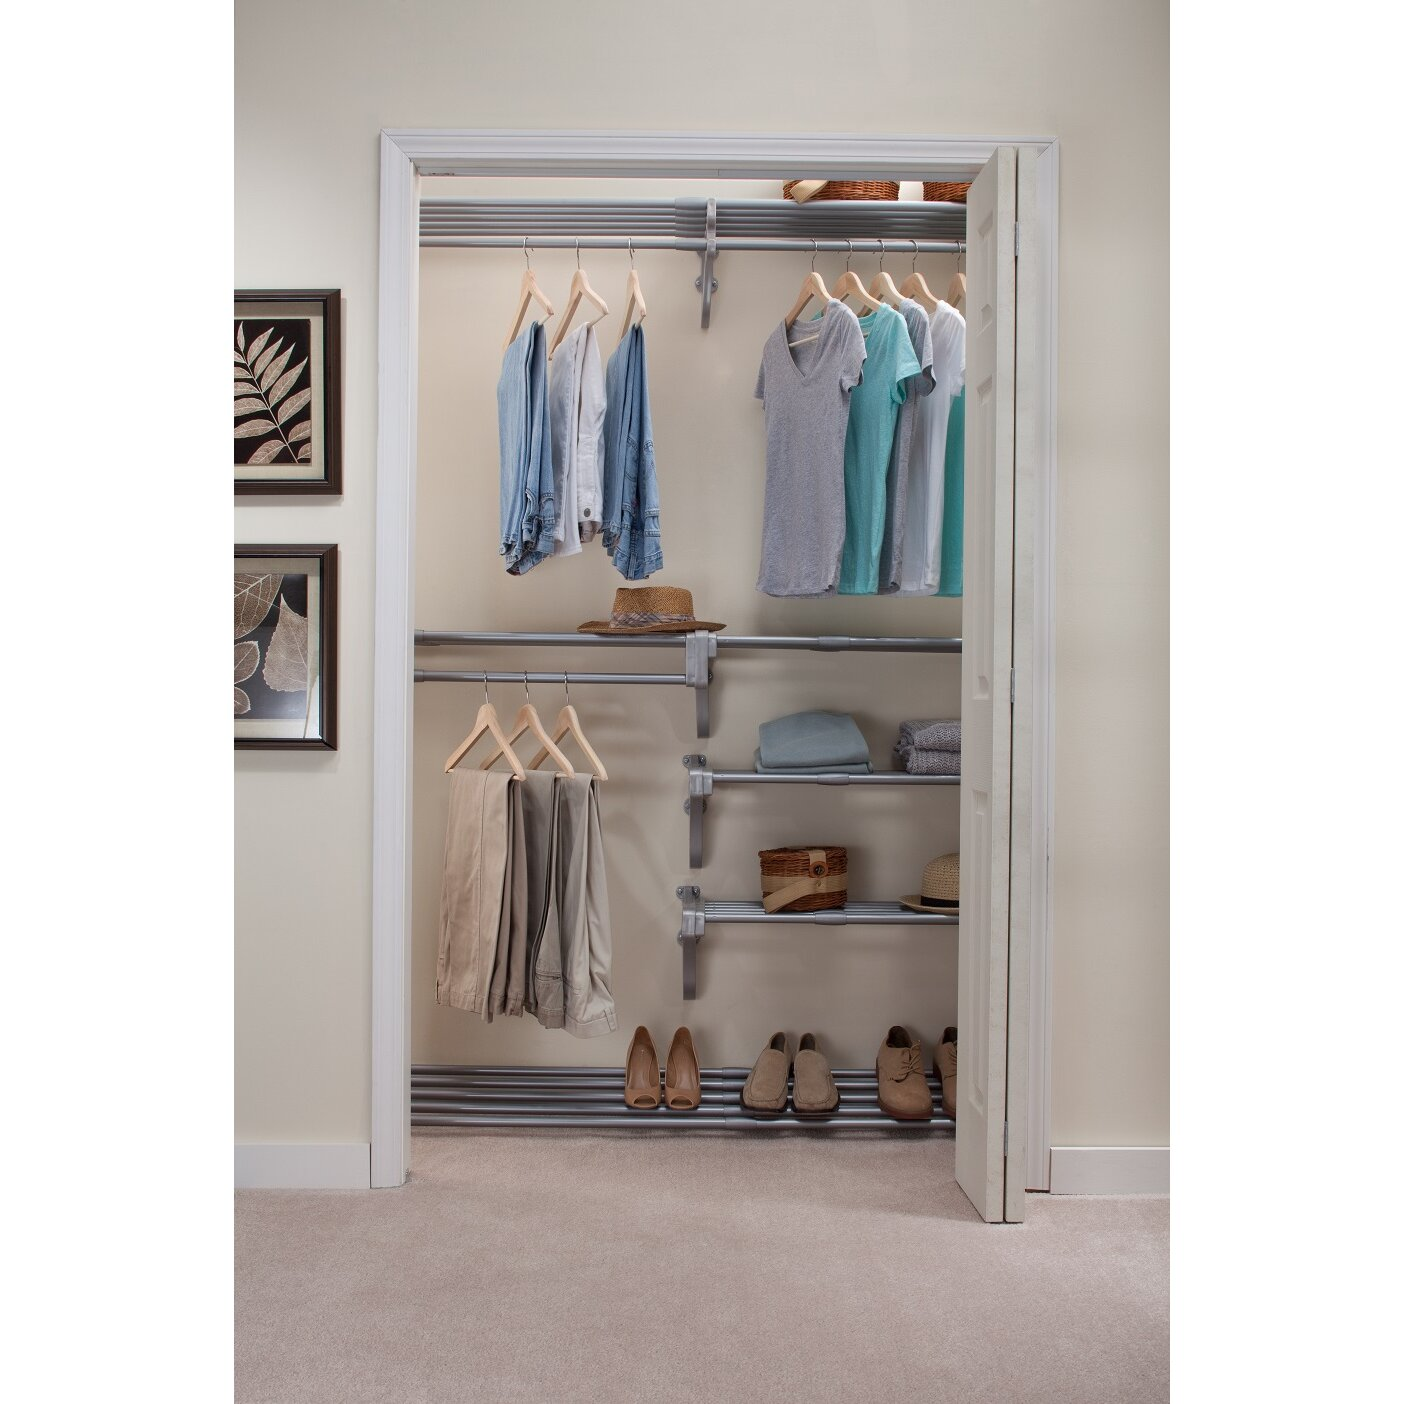 Ez shelf from tube technology expandable reach in closet for One day doors and closets reviews